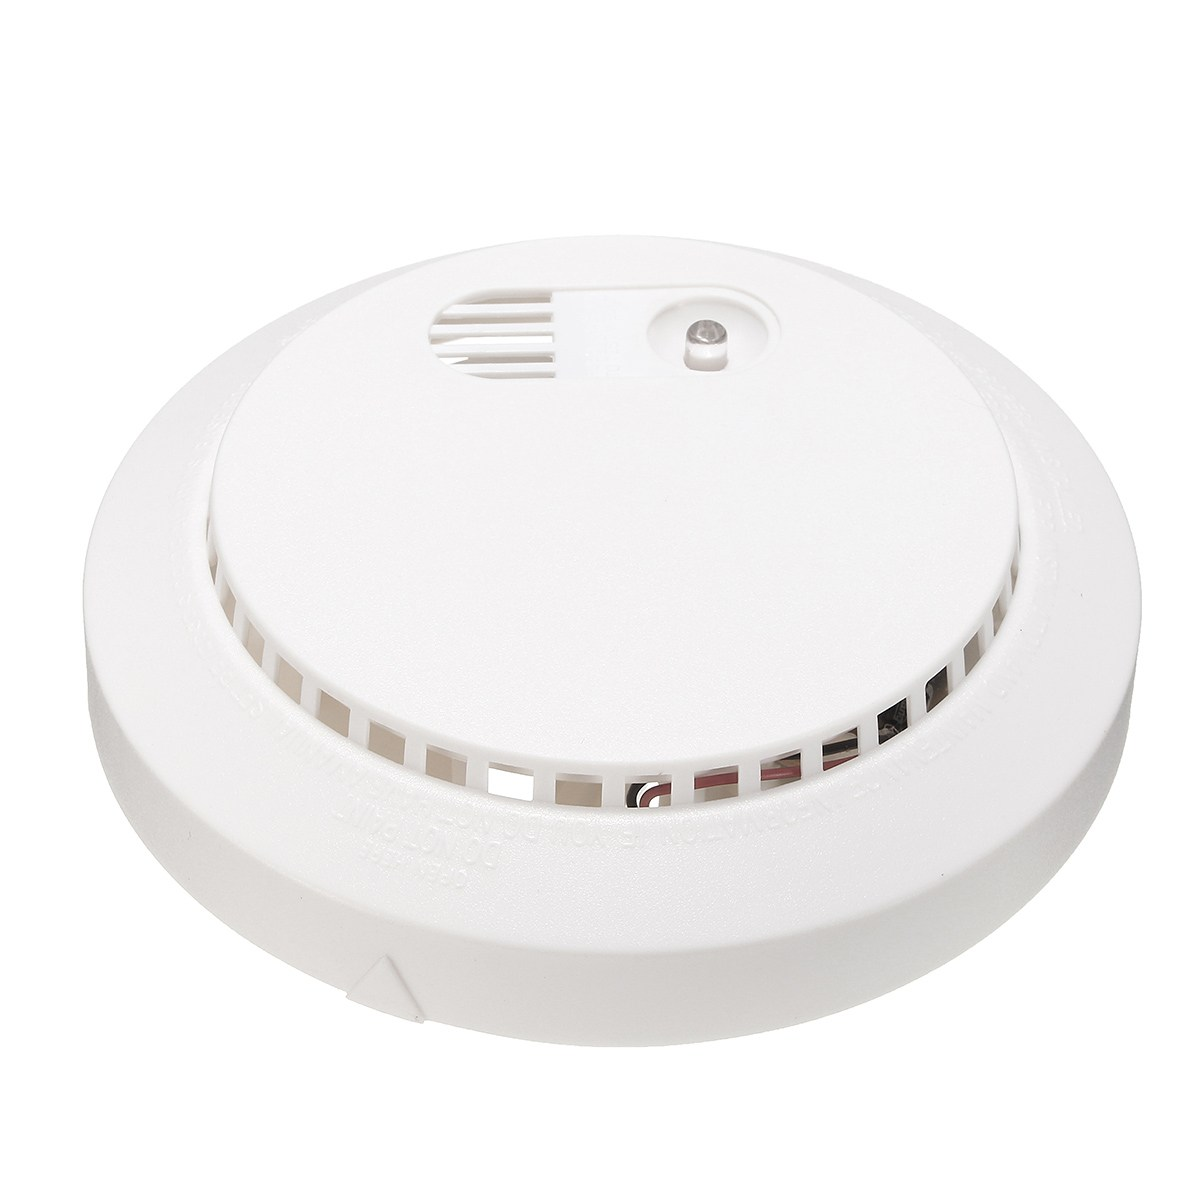 Safurance Photoelectric Smoke Sensor Warning Fire Alarm Detector Tester Battery Operated Home Security High Sensitive yobangsecurity high sensitivity photoelectric smoke detector fire alarm sensor for home security independent smoke sensor white